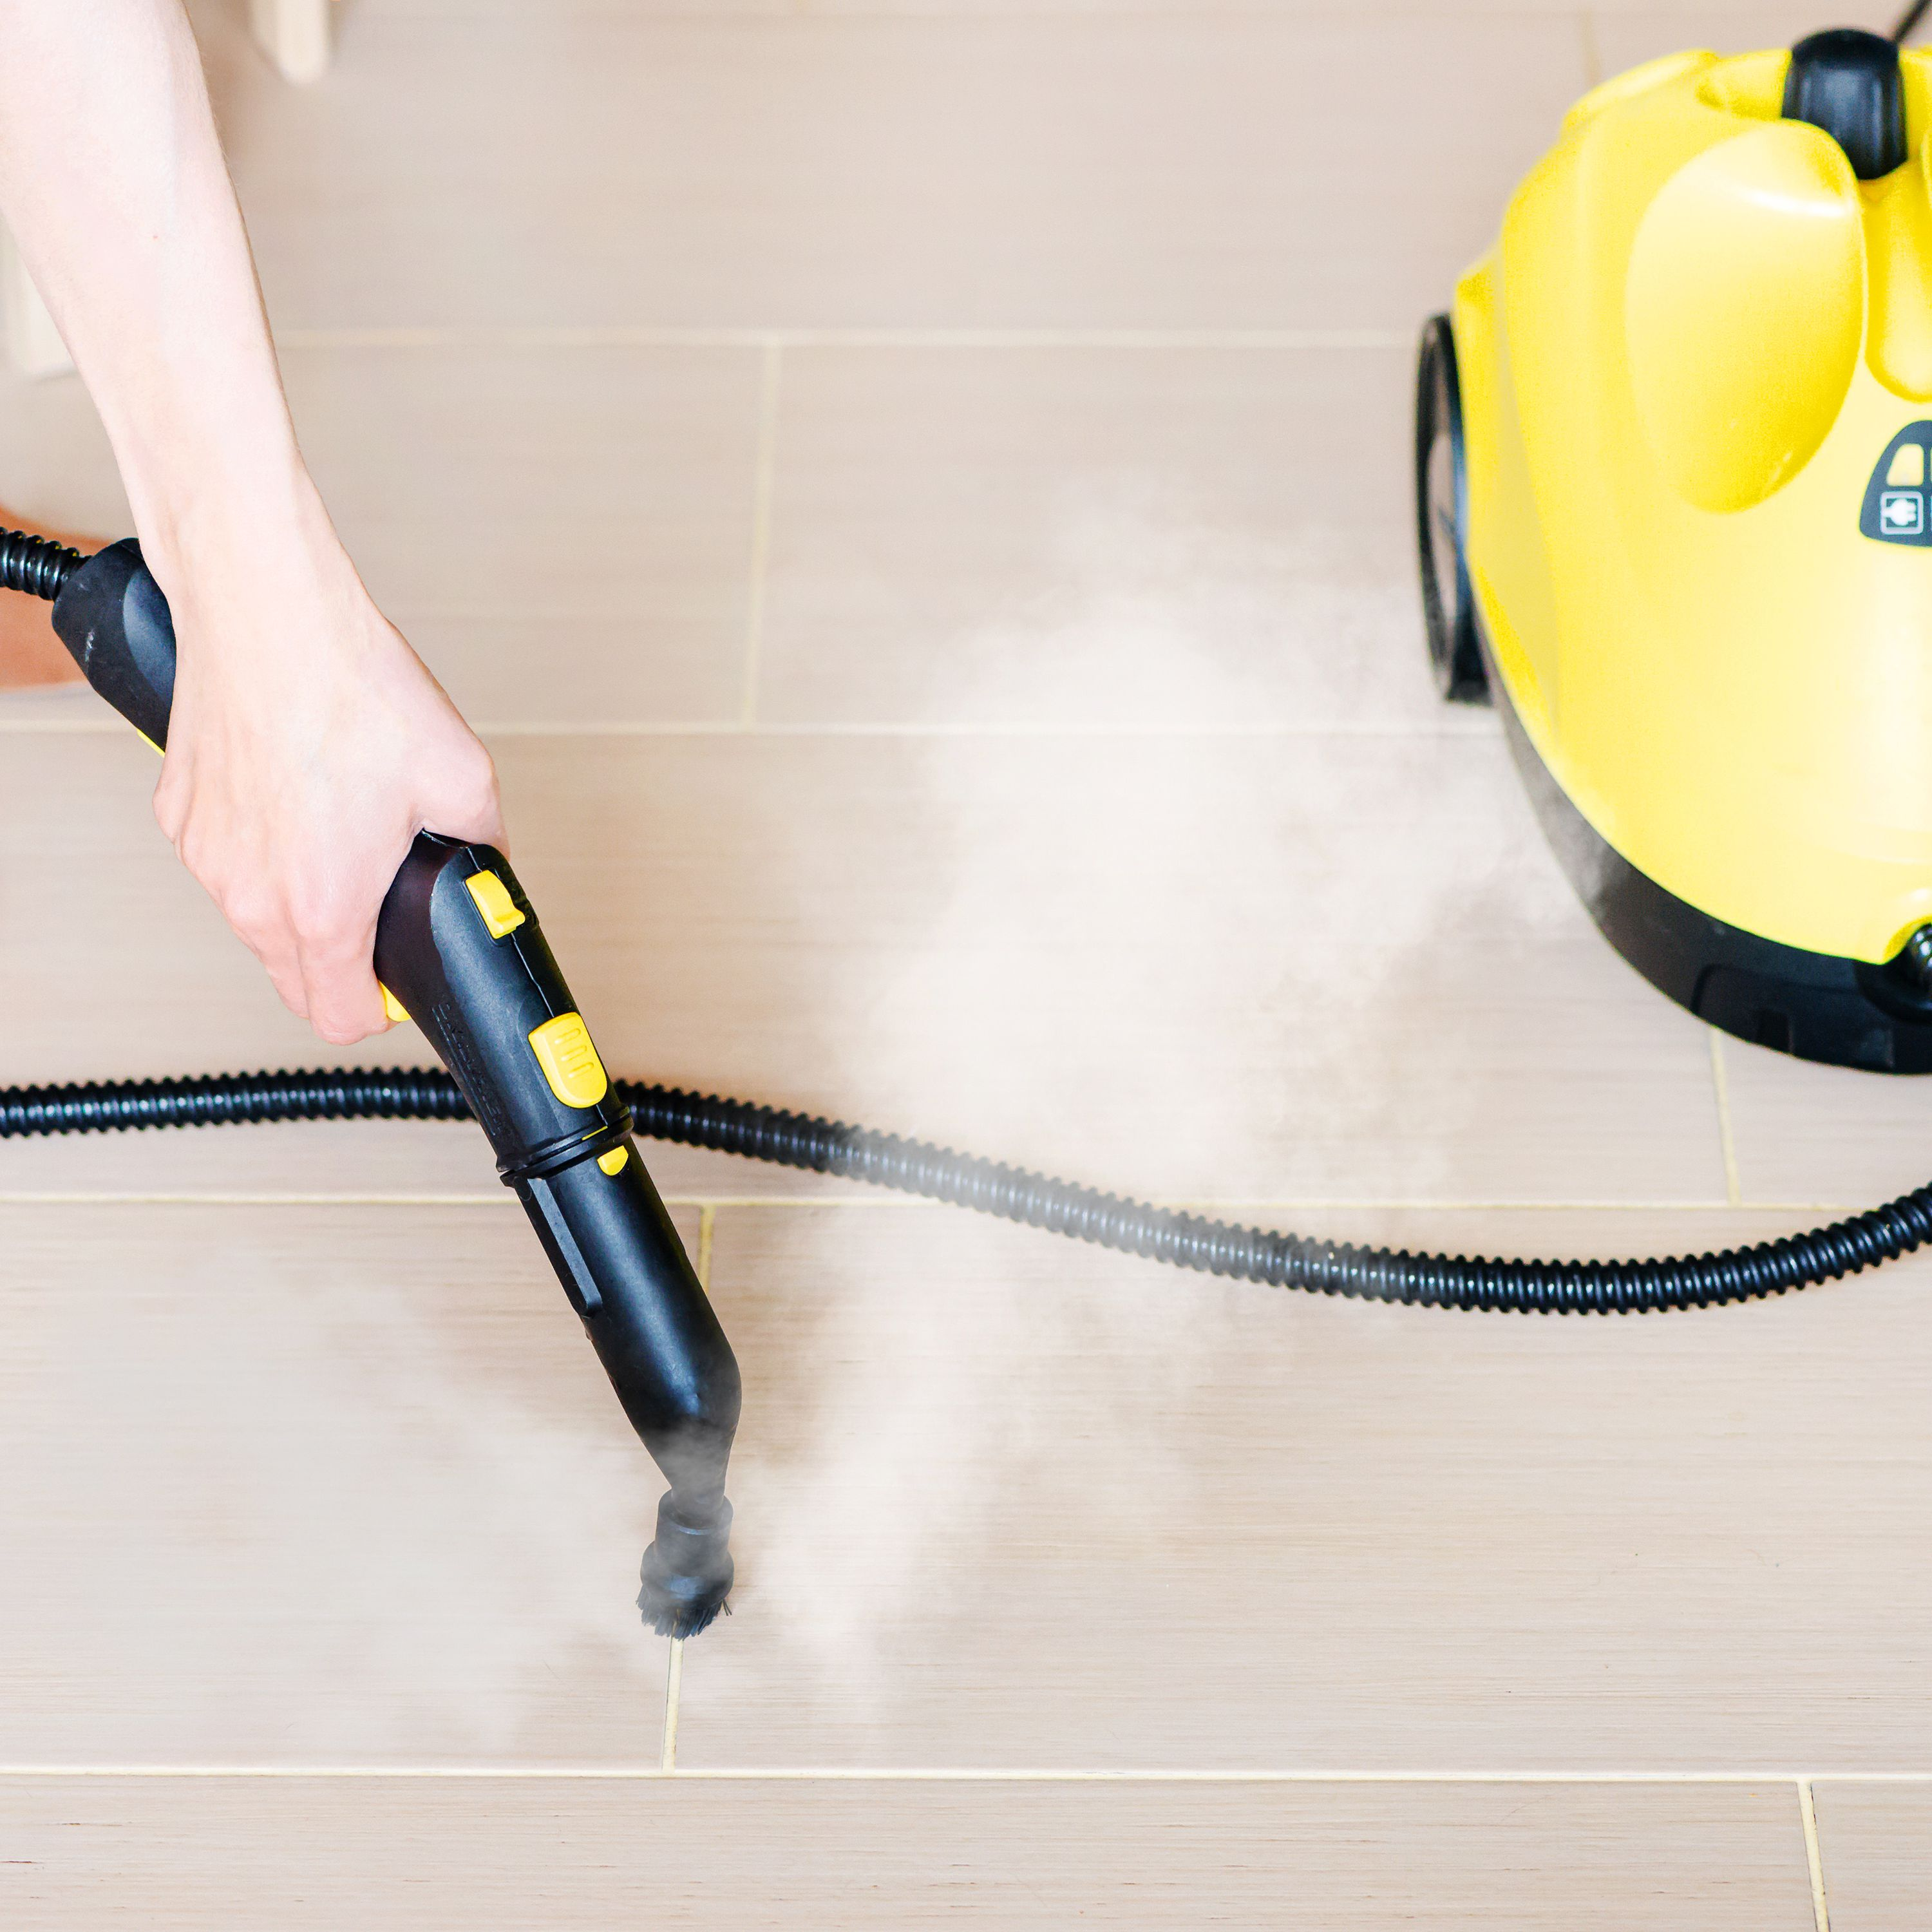 how to use a steam cleaner for grout